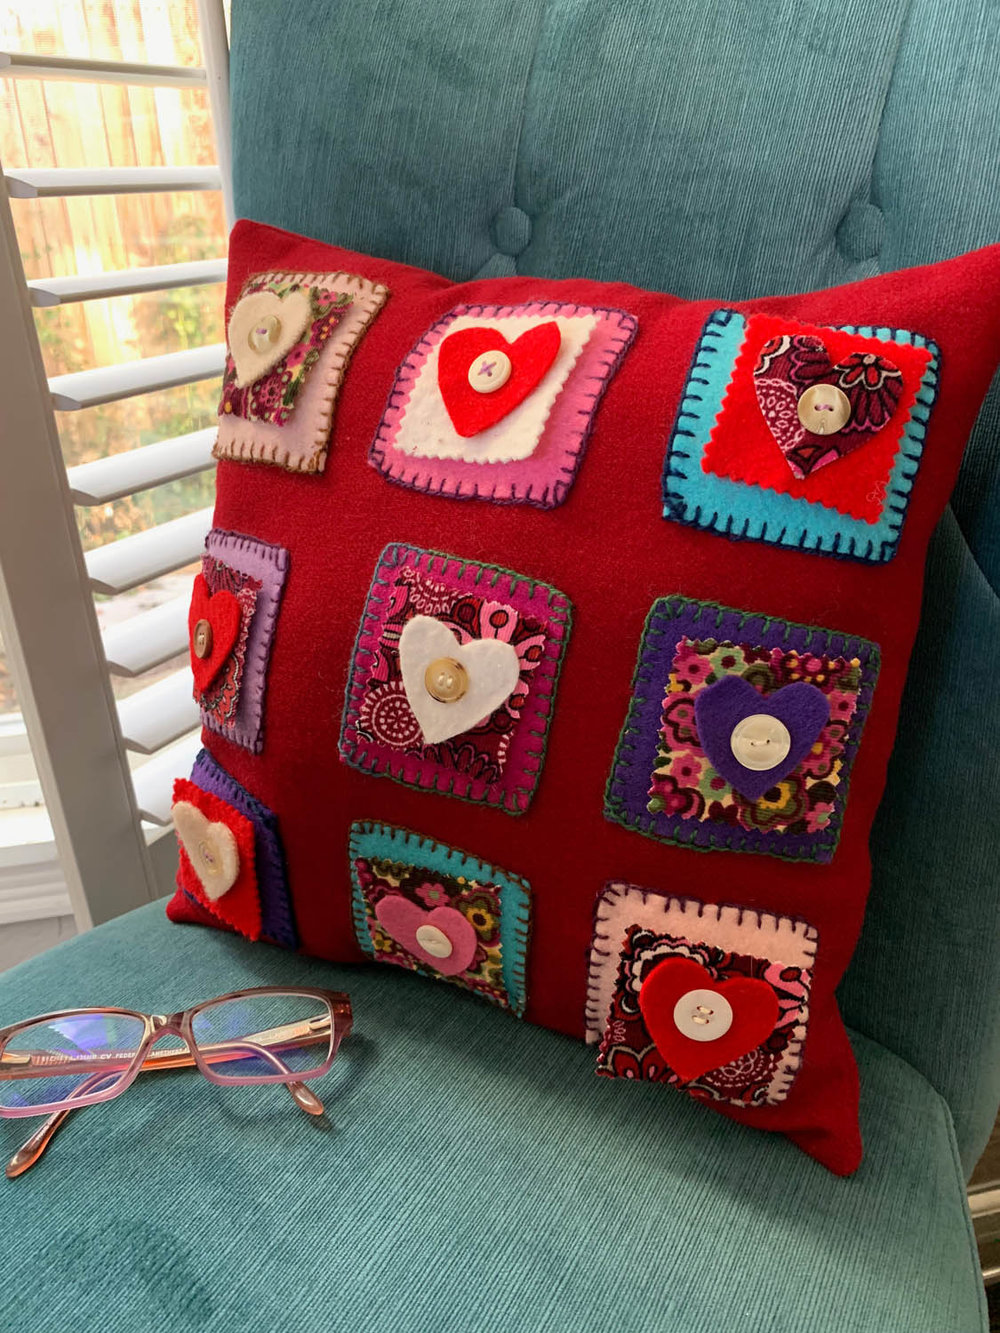 Finished Folksy Felted Valentine's Day heart pillow on a chair